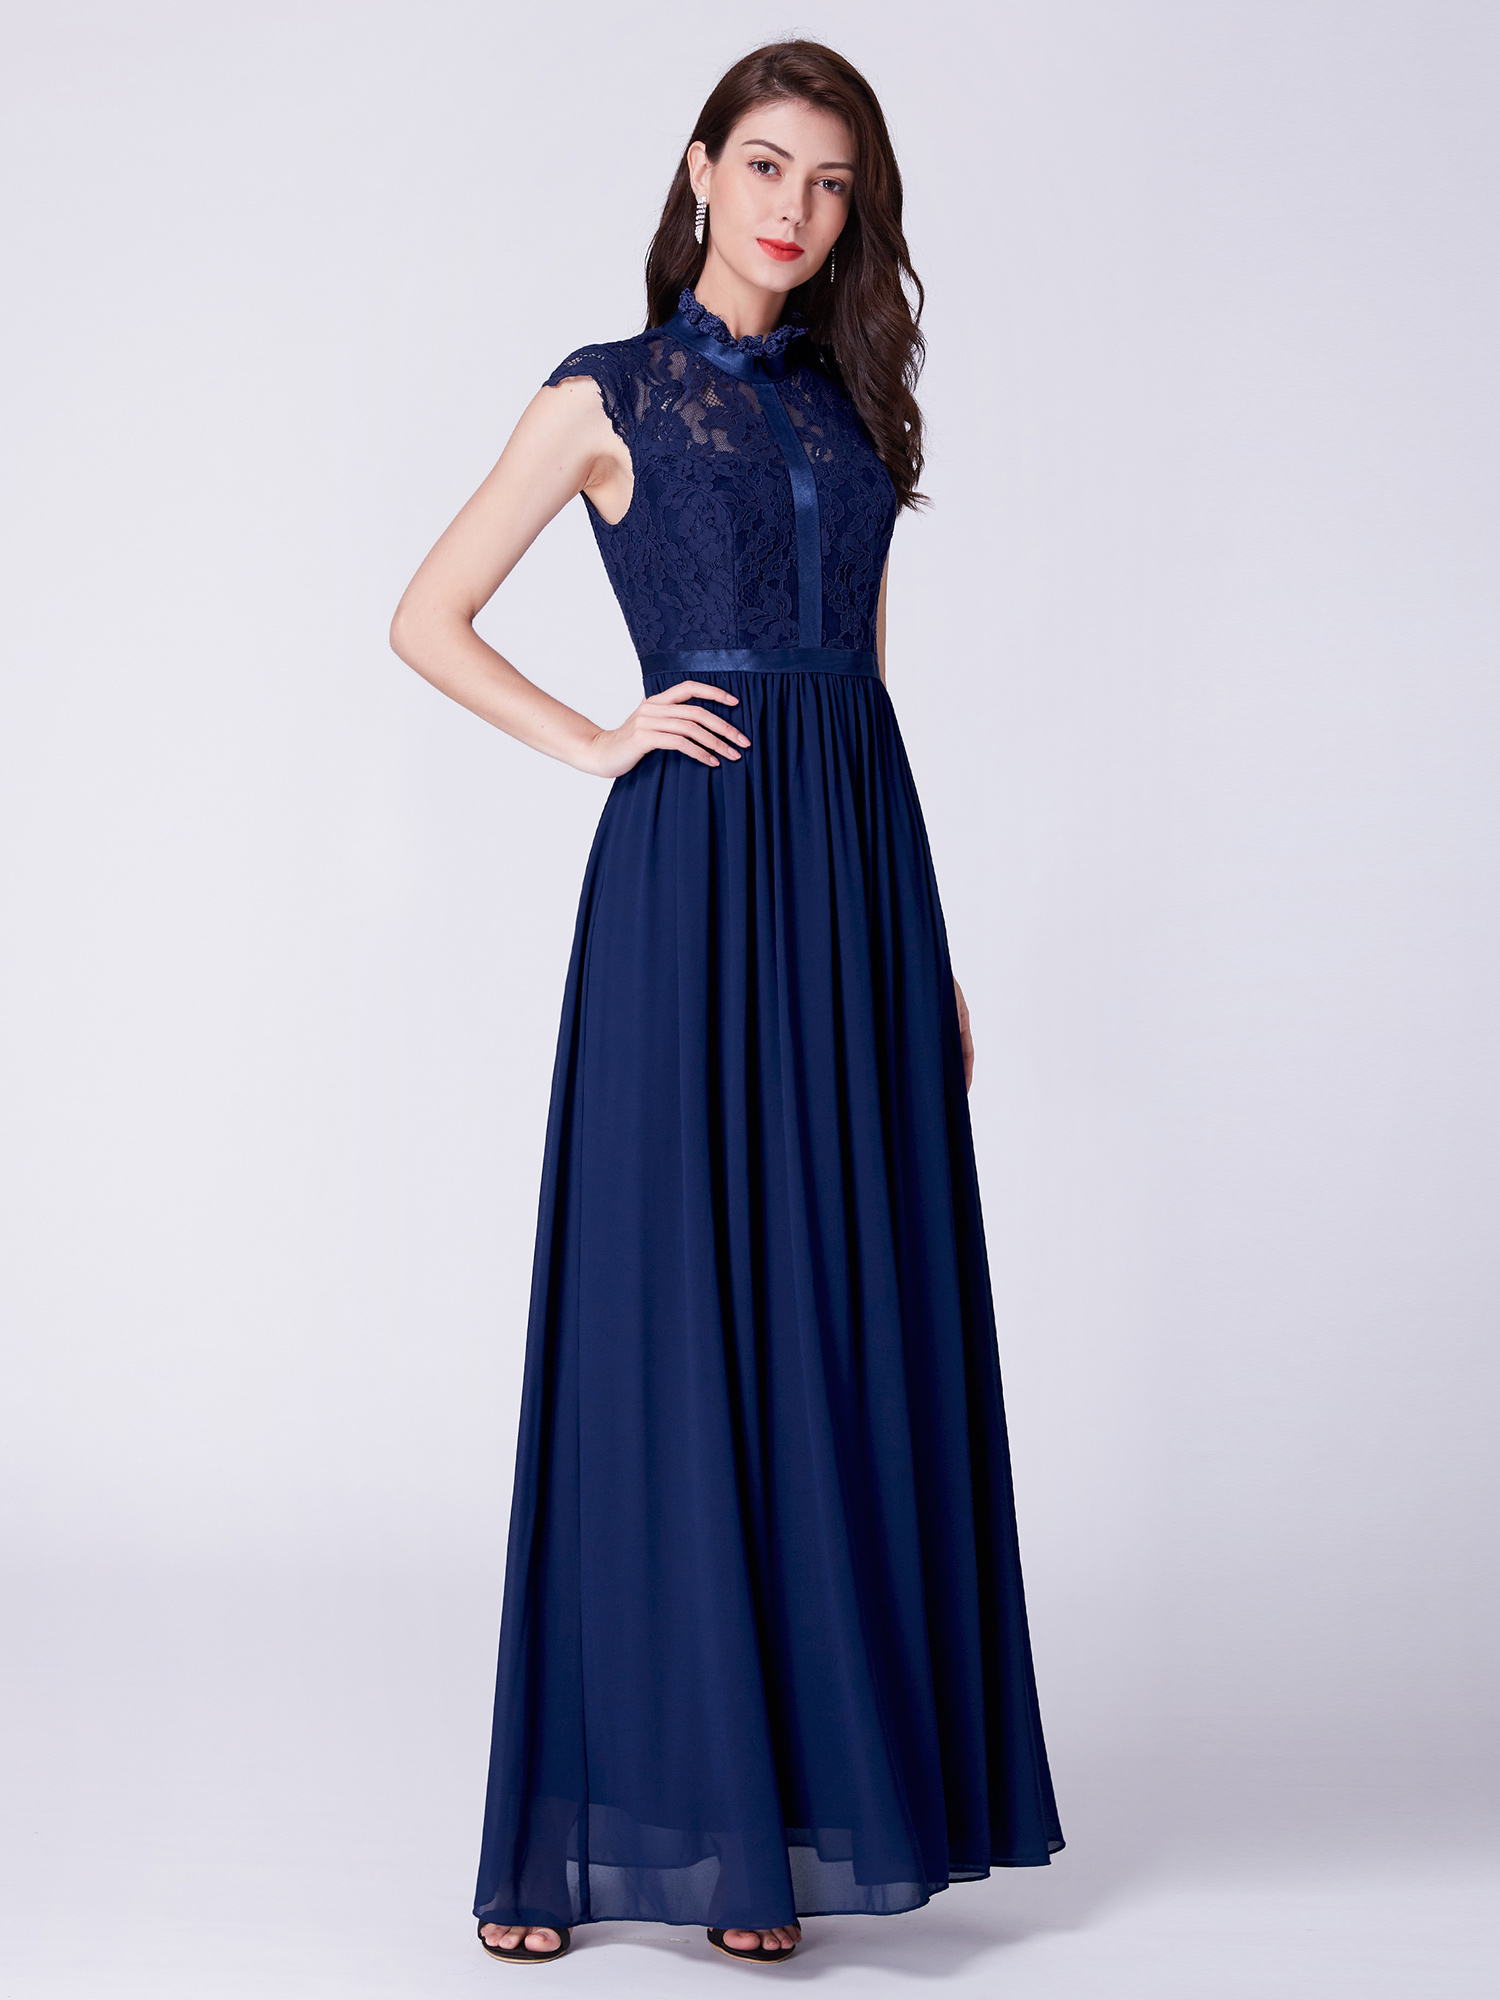 611bf44490b Ever-Pretty Navy Blue Homecoming Dresses Long Lace Backless Holiday ...